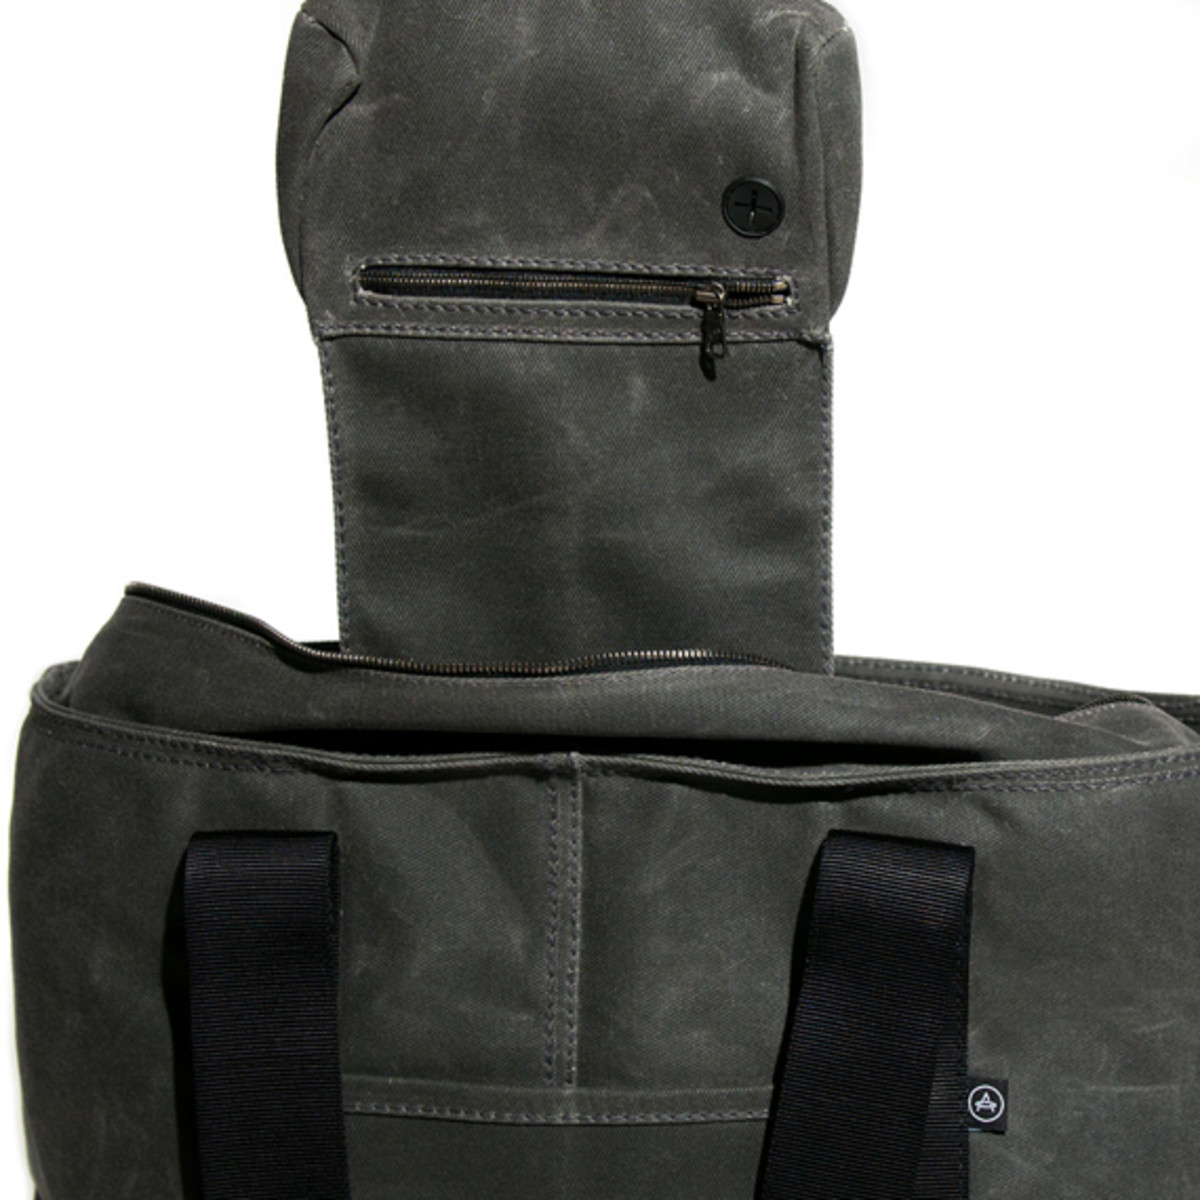 aether-canvas-utility-tote-bag-10